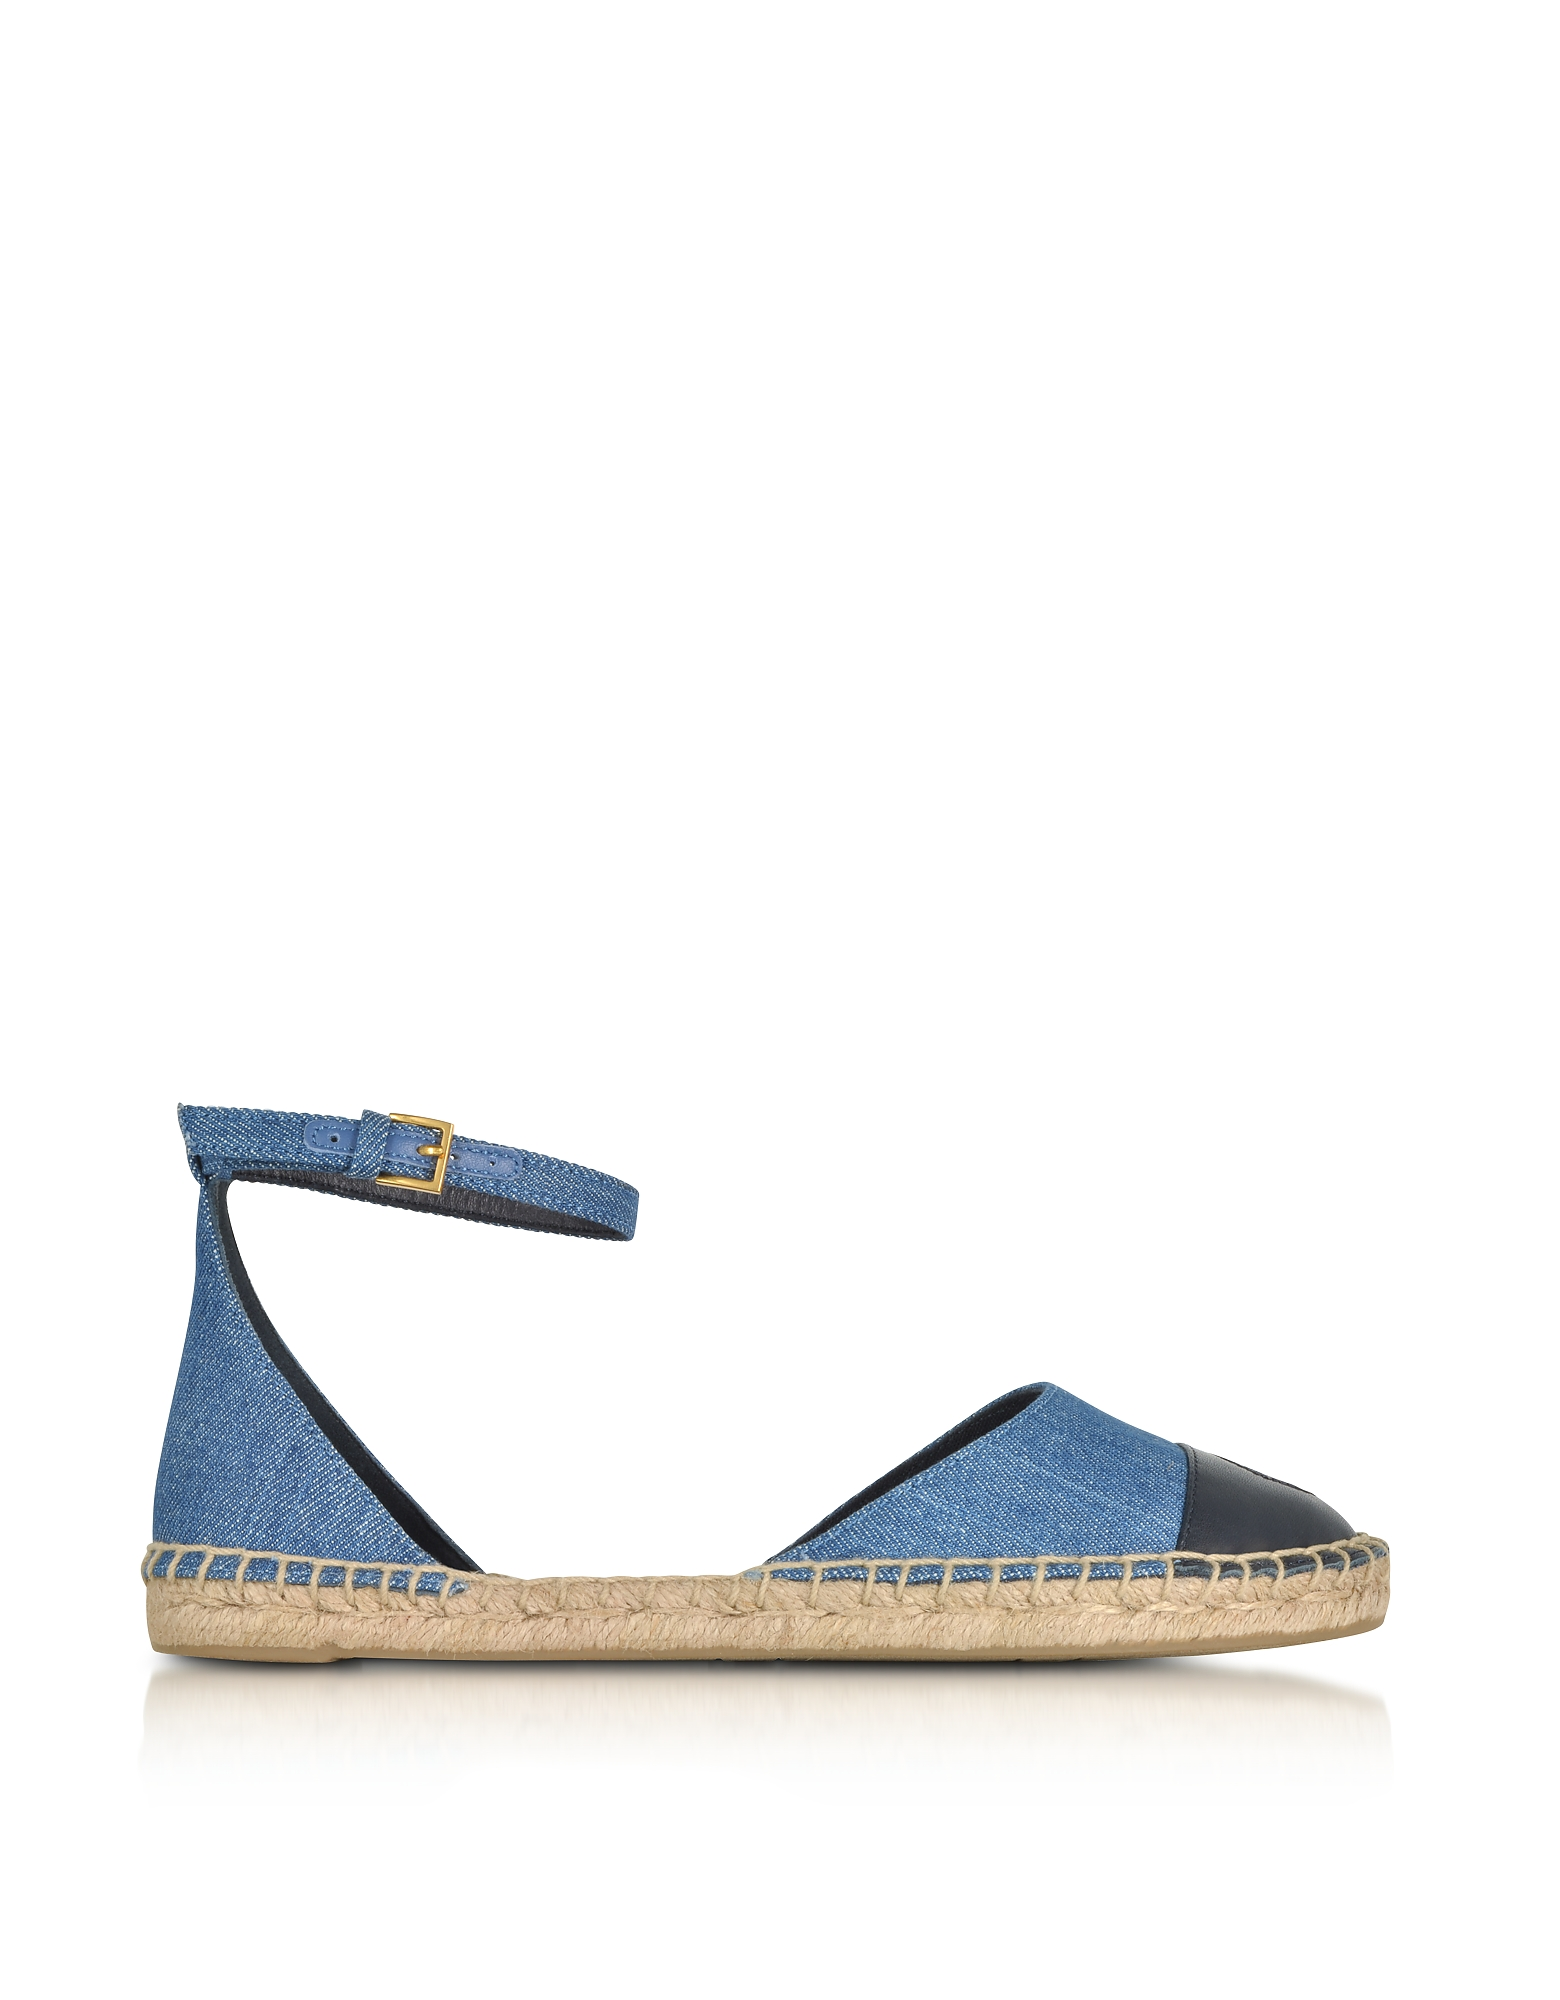 Tory Burch Shoes, Color Block Denim and Leather Ankle Strap Espadrilles